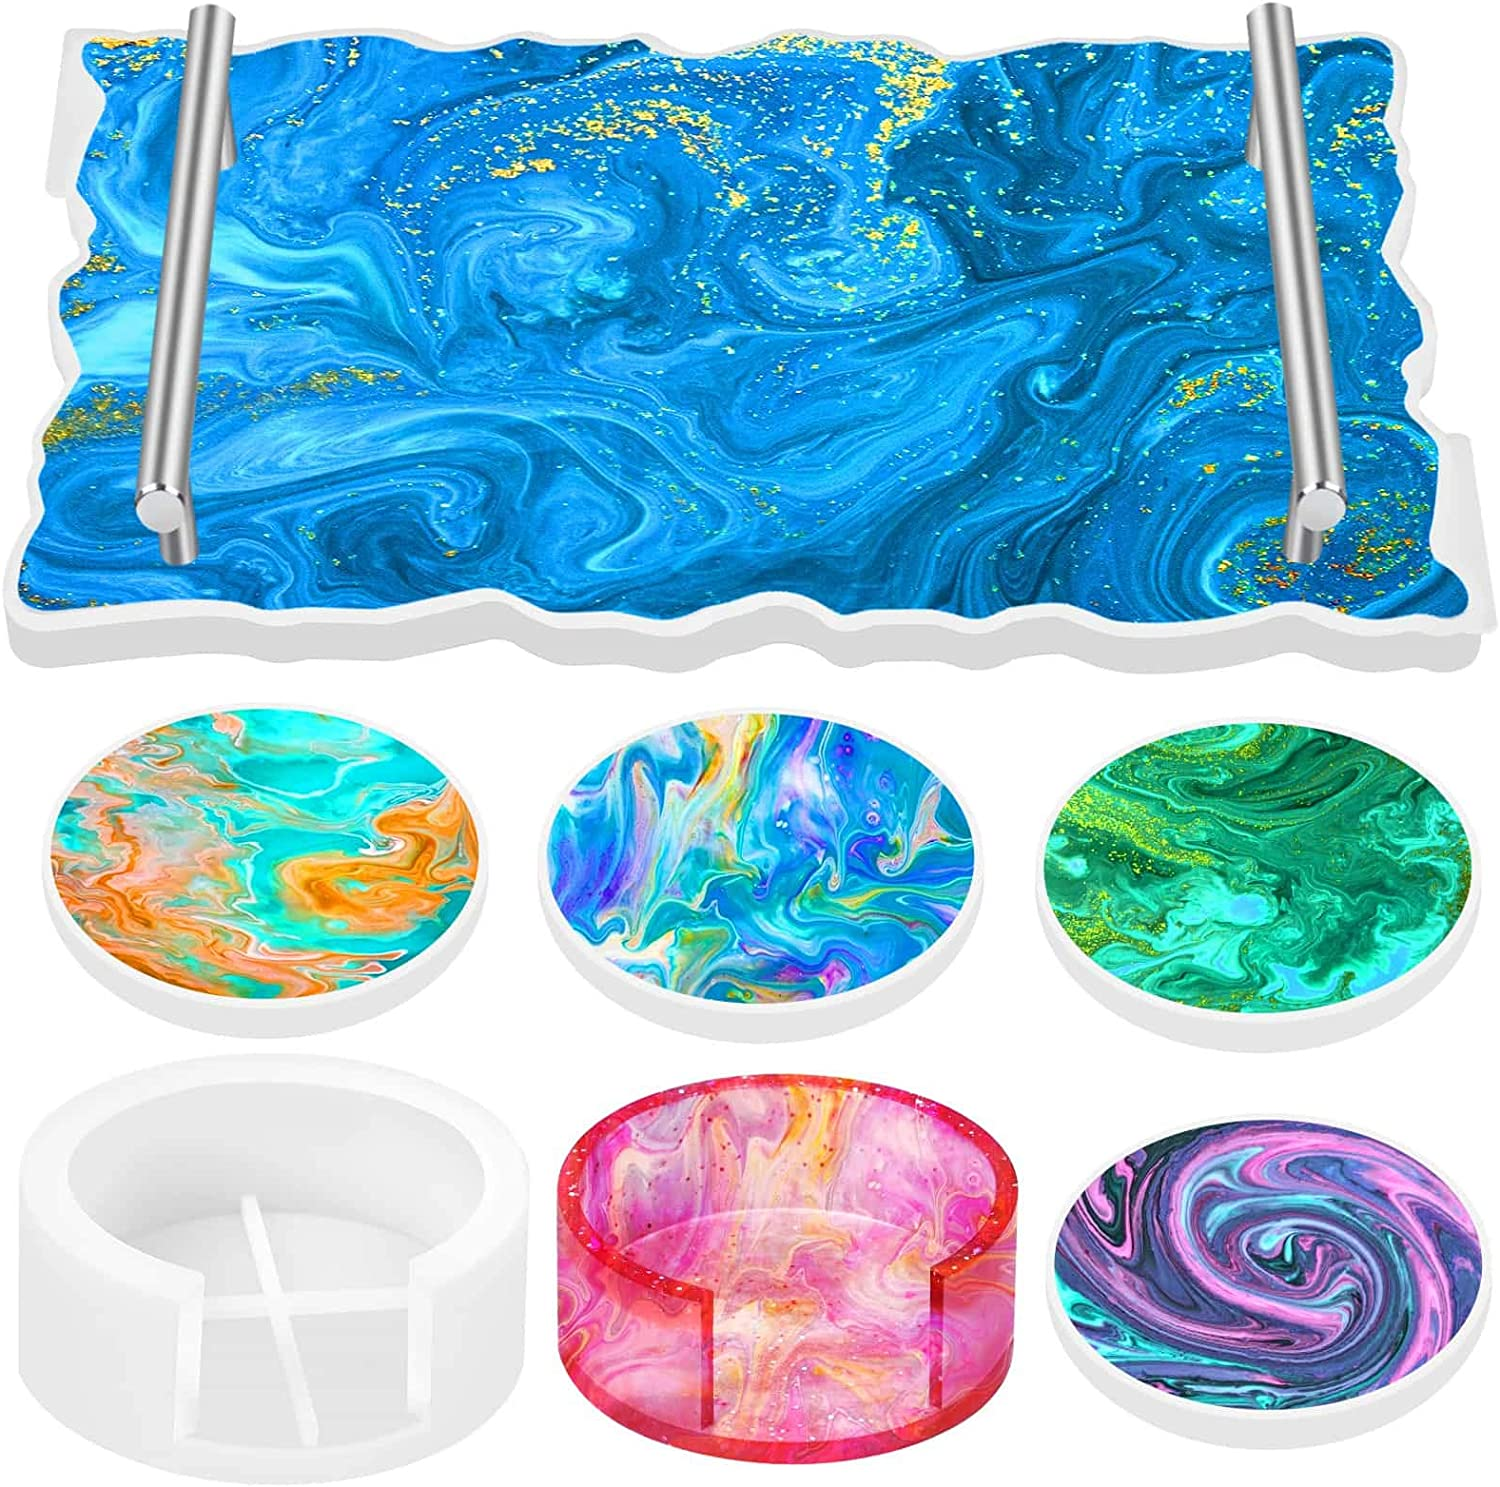 Tuceyea 8Pcs Coaster and Tray Molds Resin Set Popular Max 59% OFF brand Includin Silicone